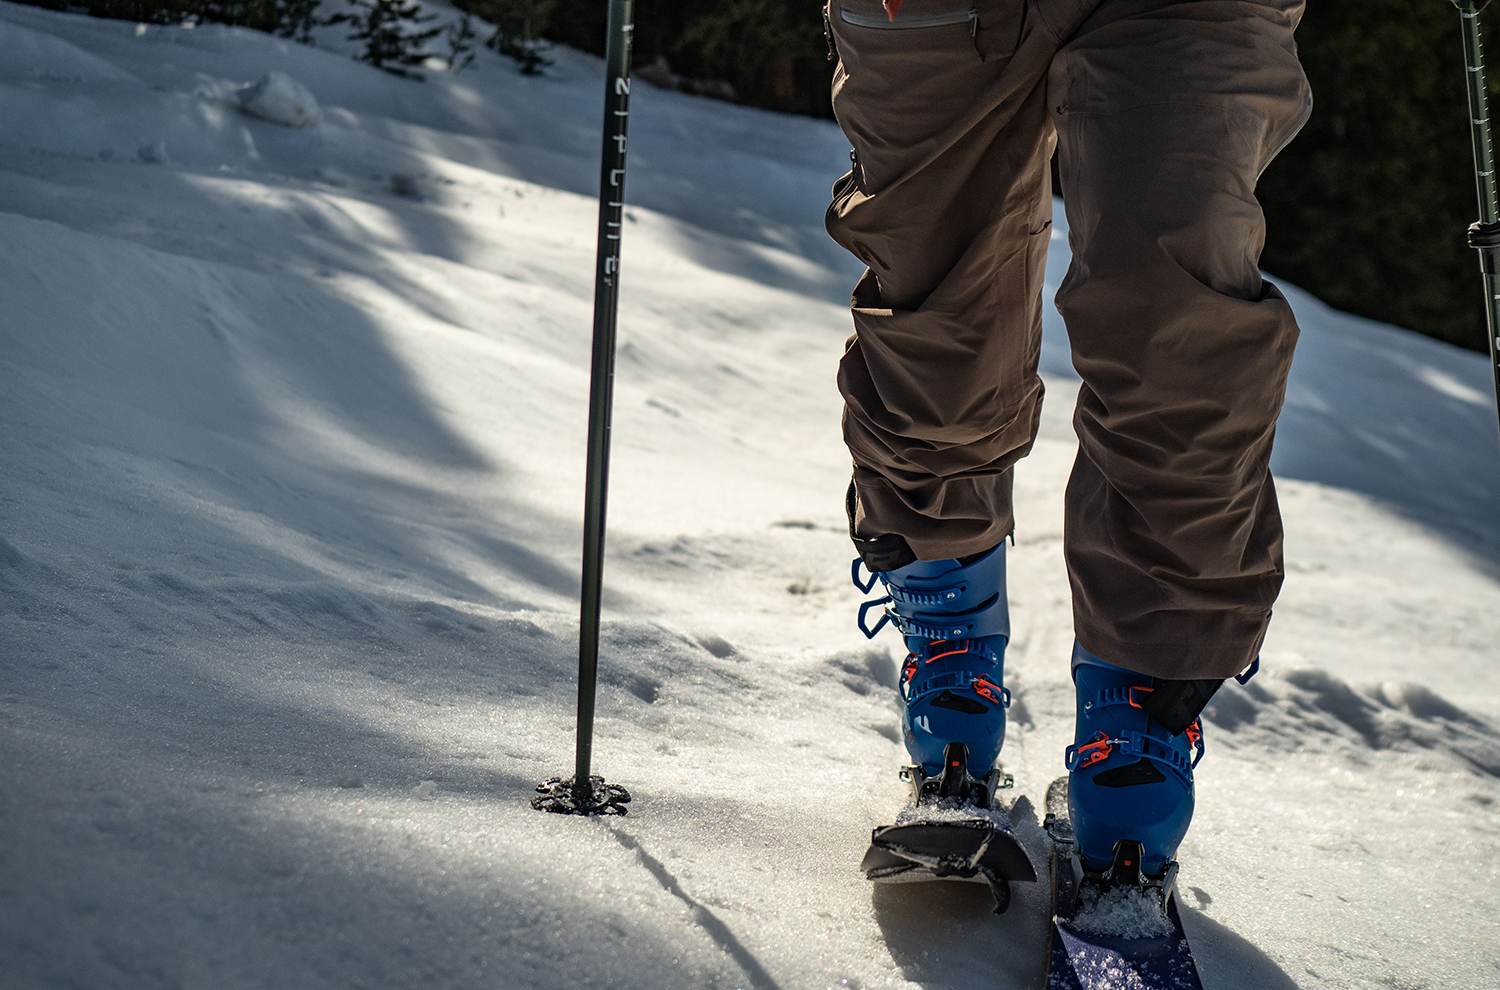 On Blister's GEAR:30 podcast, Jonathan Ellsworth and Blacksheep Sports' Sebastian Steinbach discuss a number of alpine touring products, including the Lange XT3 Tour Pro, Tecnica Cochise 130, Dalbello Quantum Free 130, Moment Wildcat Tour 108, Augment AM98, Plum Summit 12 binding, and more